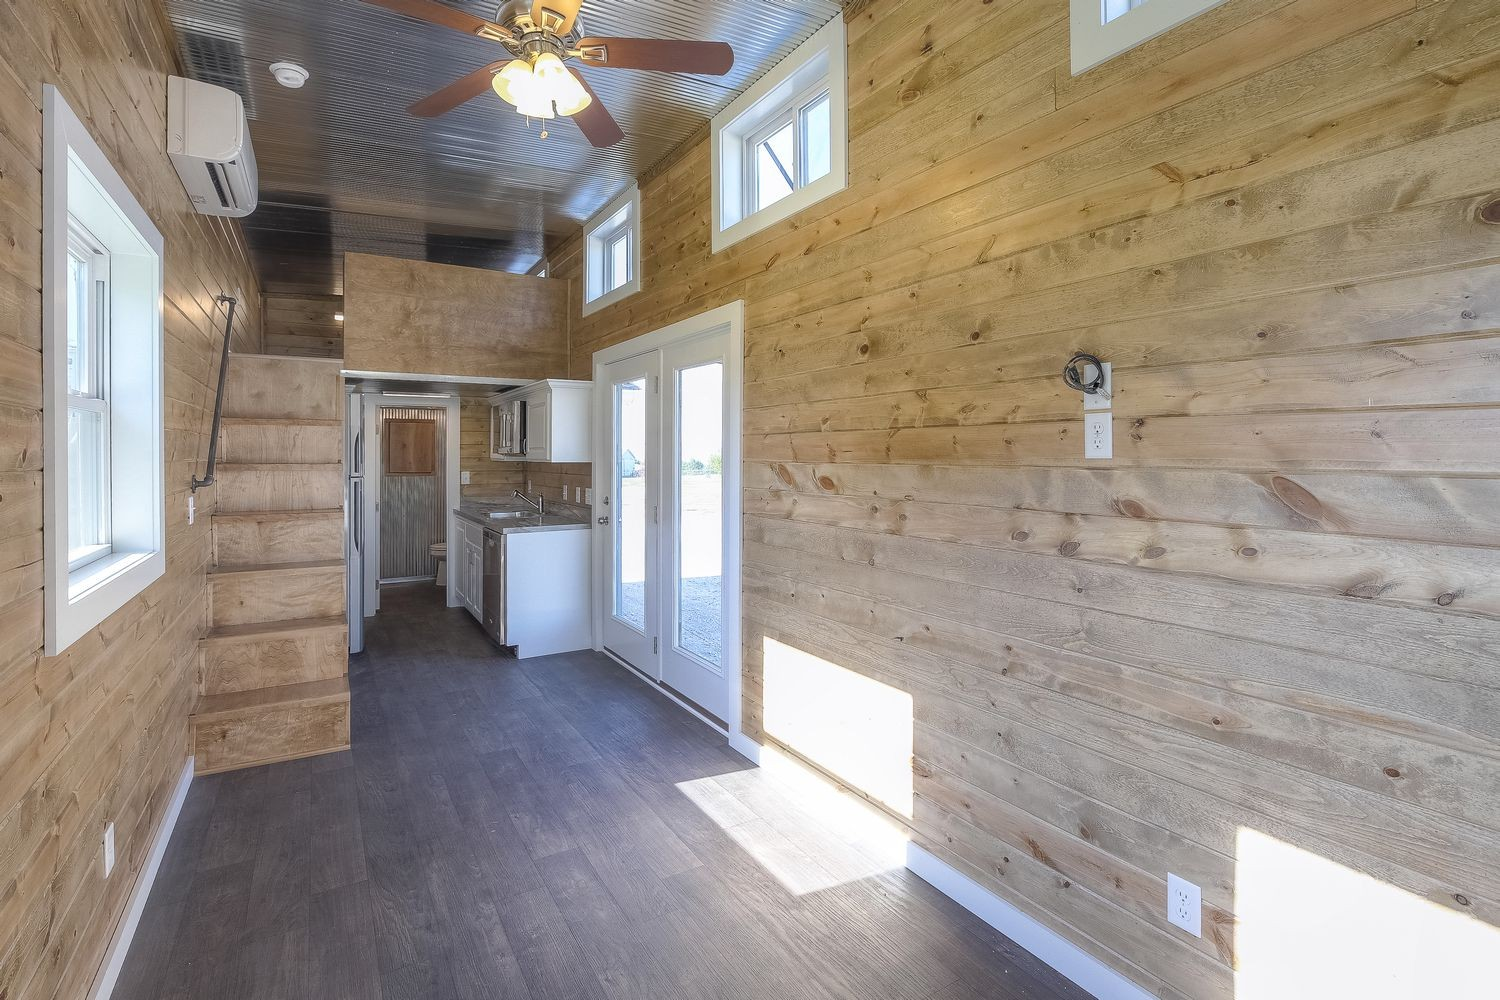 Slick tiny house converted from 40 foot shipping container Curbed